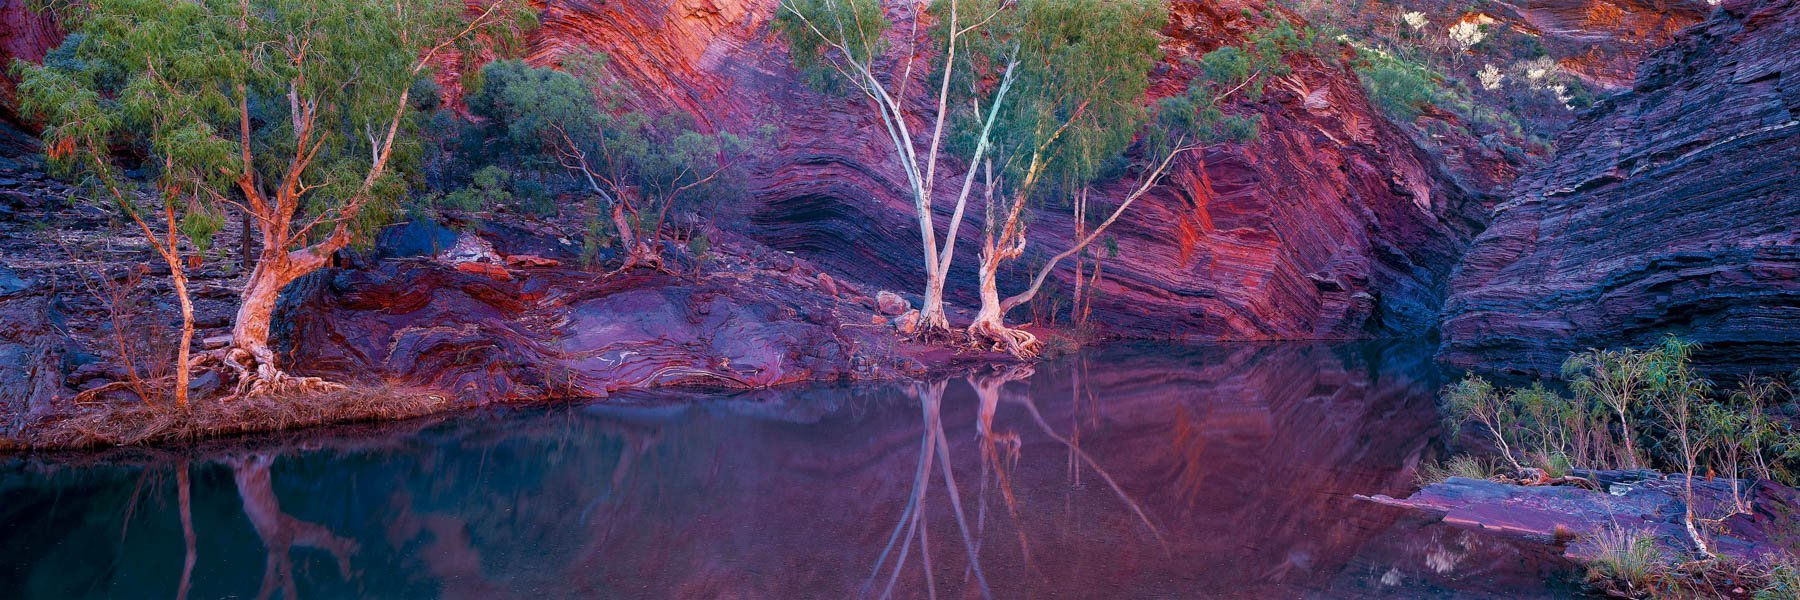 Late afternoon reflections in a pool, Hammersly Gorge, WA, Australia.